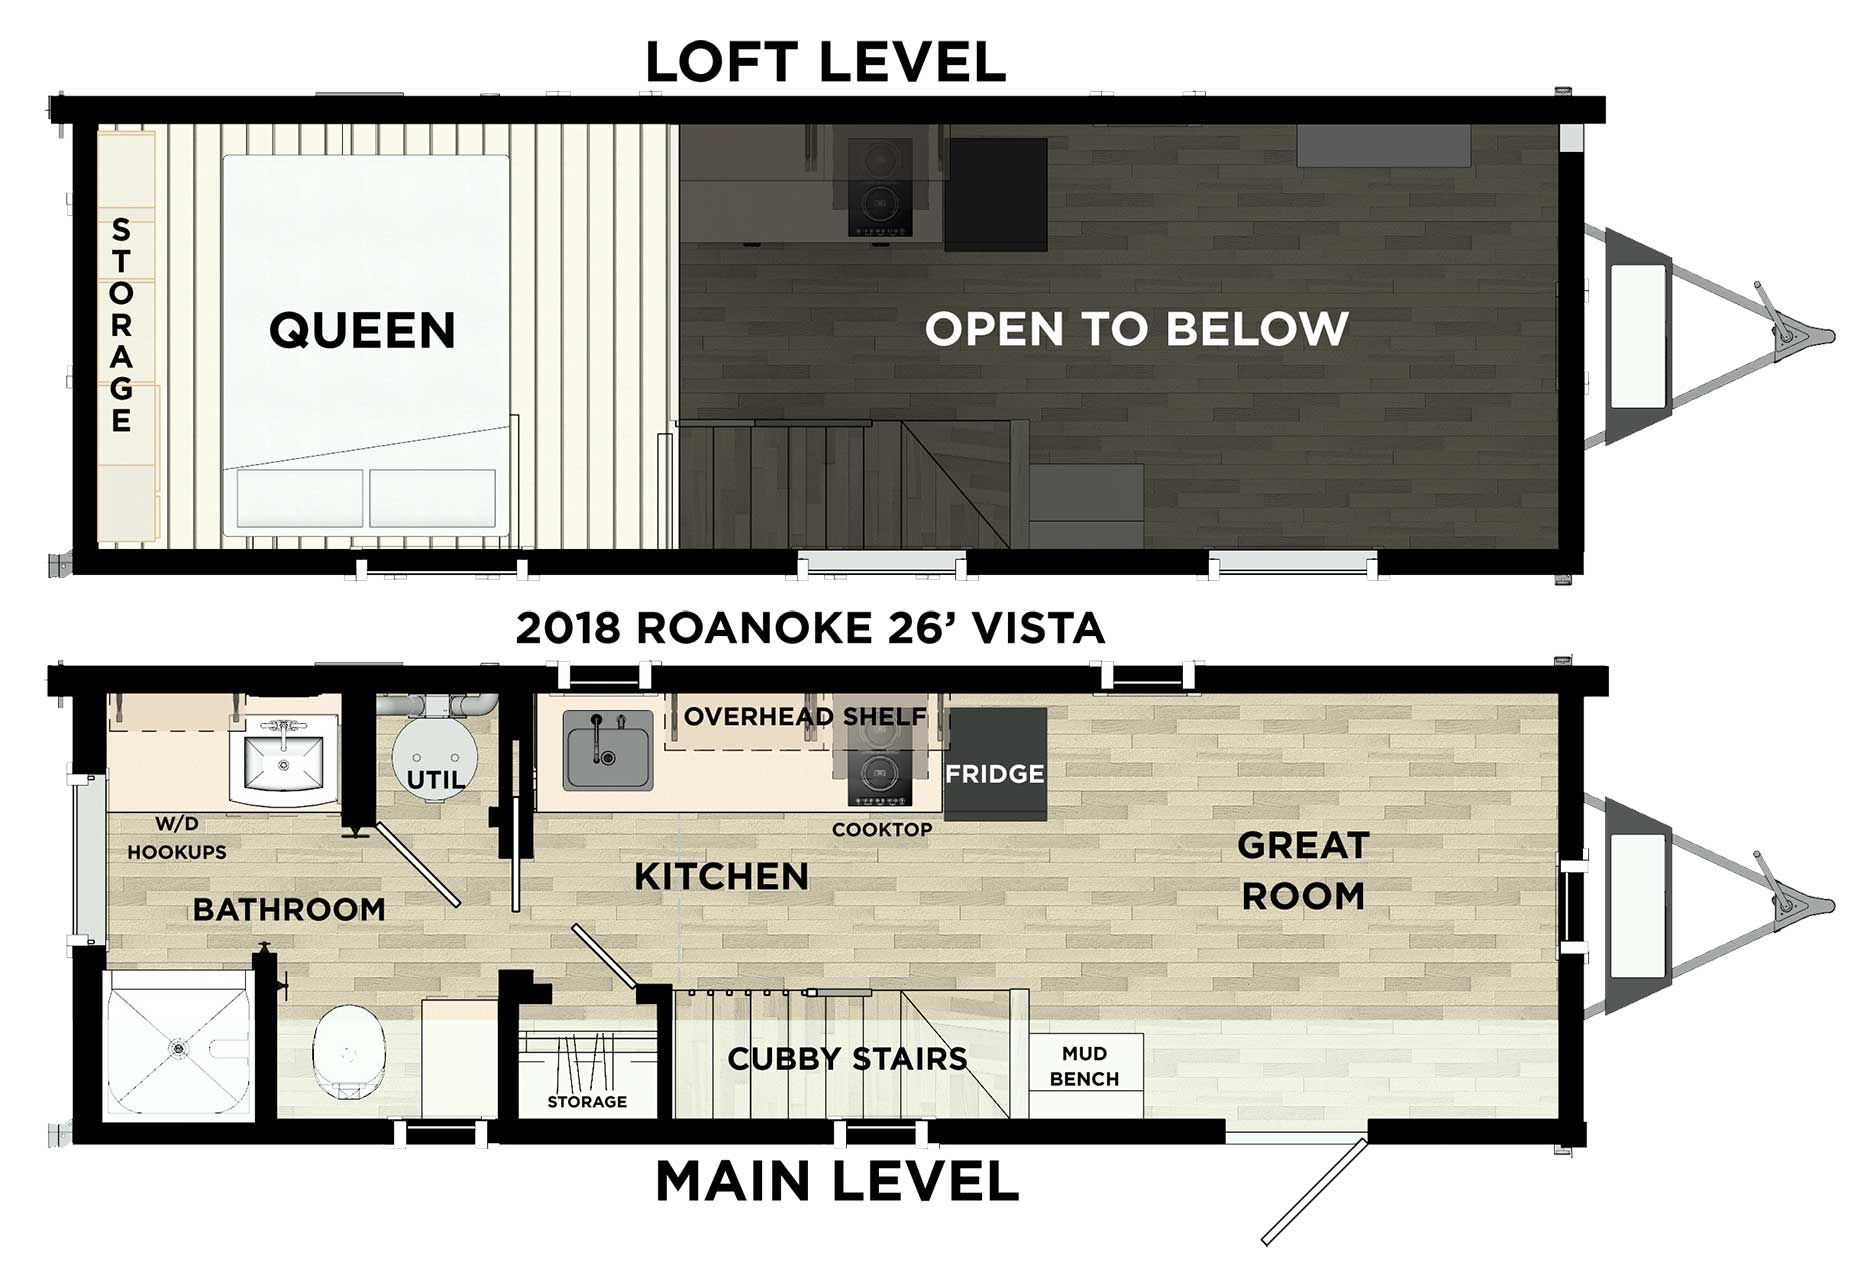 2018 Roanoke Vista